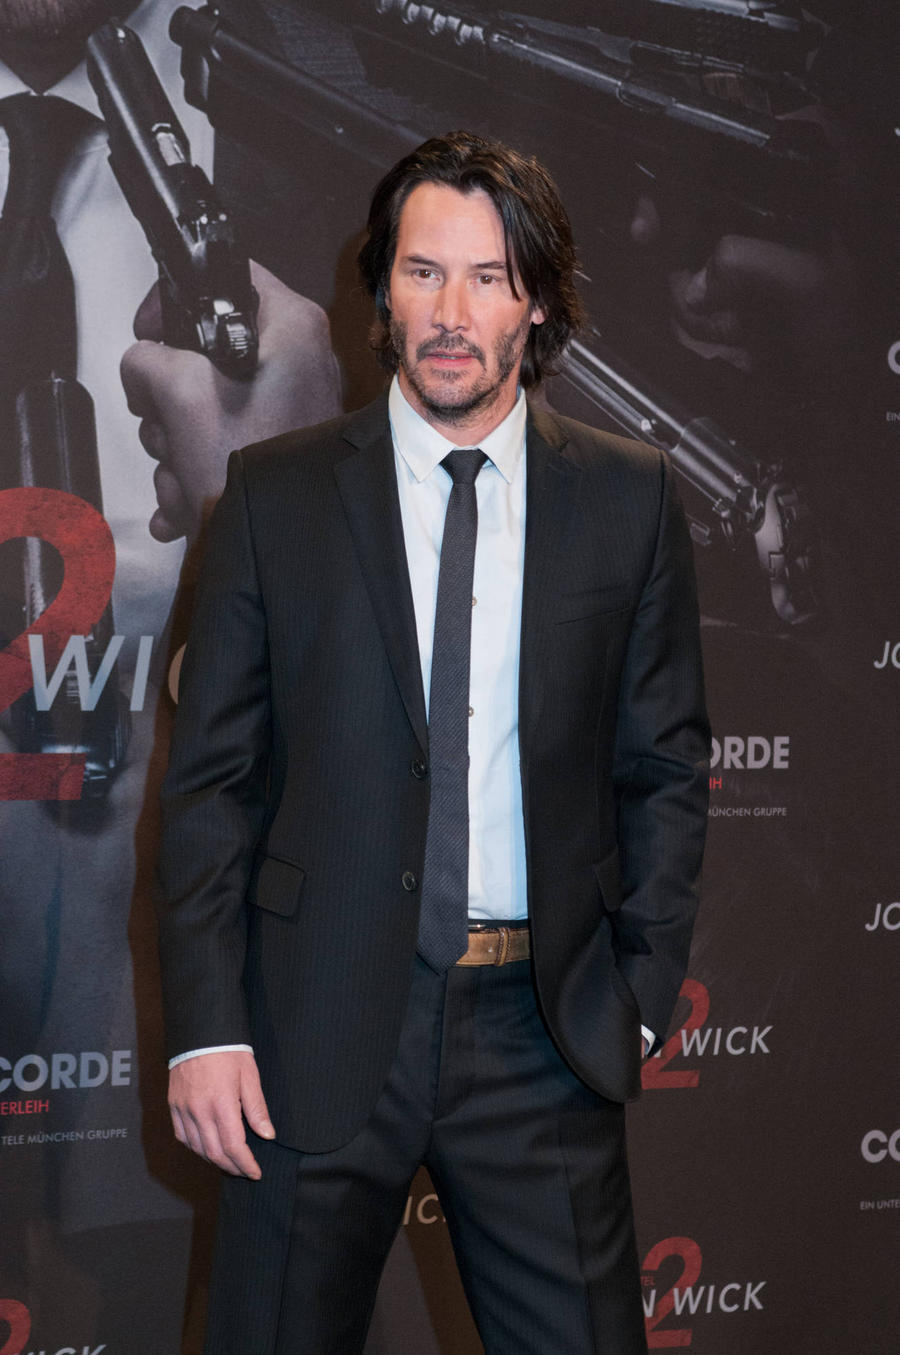 Keanu Reeves Impressed With Passengers After Pulling Out Of Film